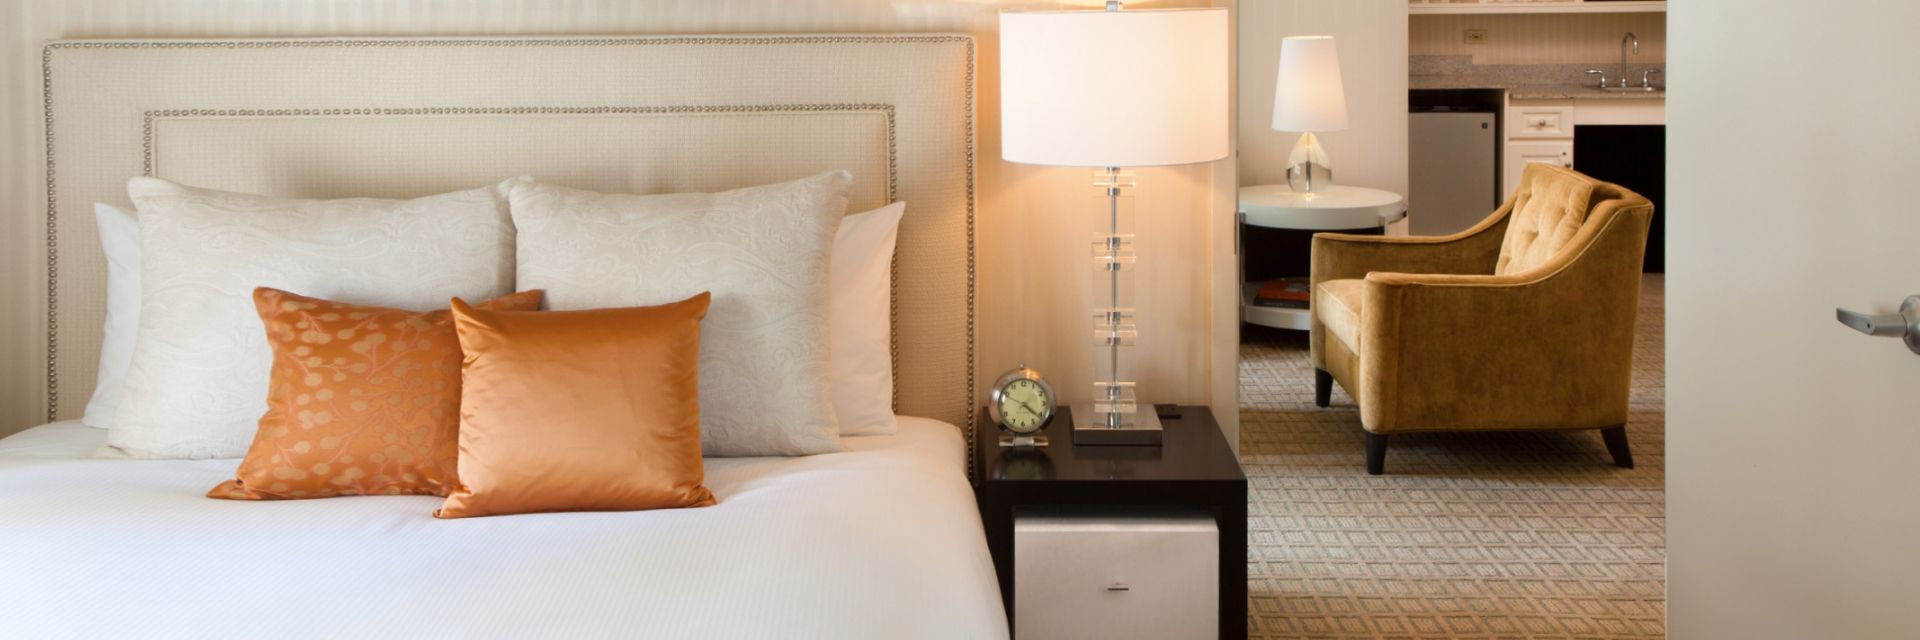 A bed overlooking a suite and kitchenette at The Benjamin